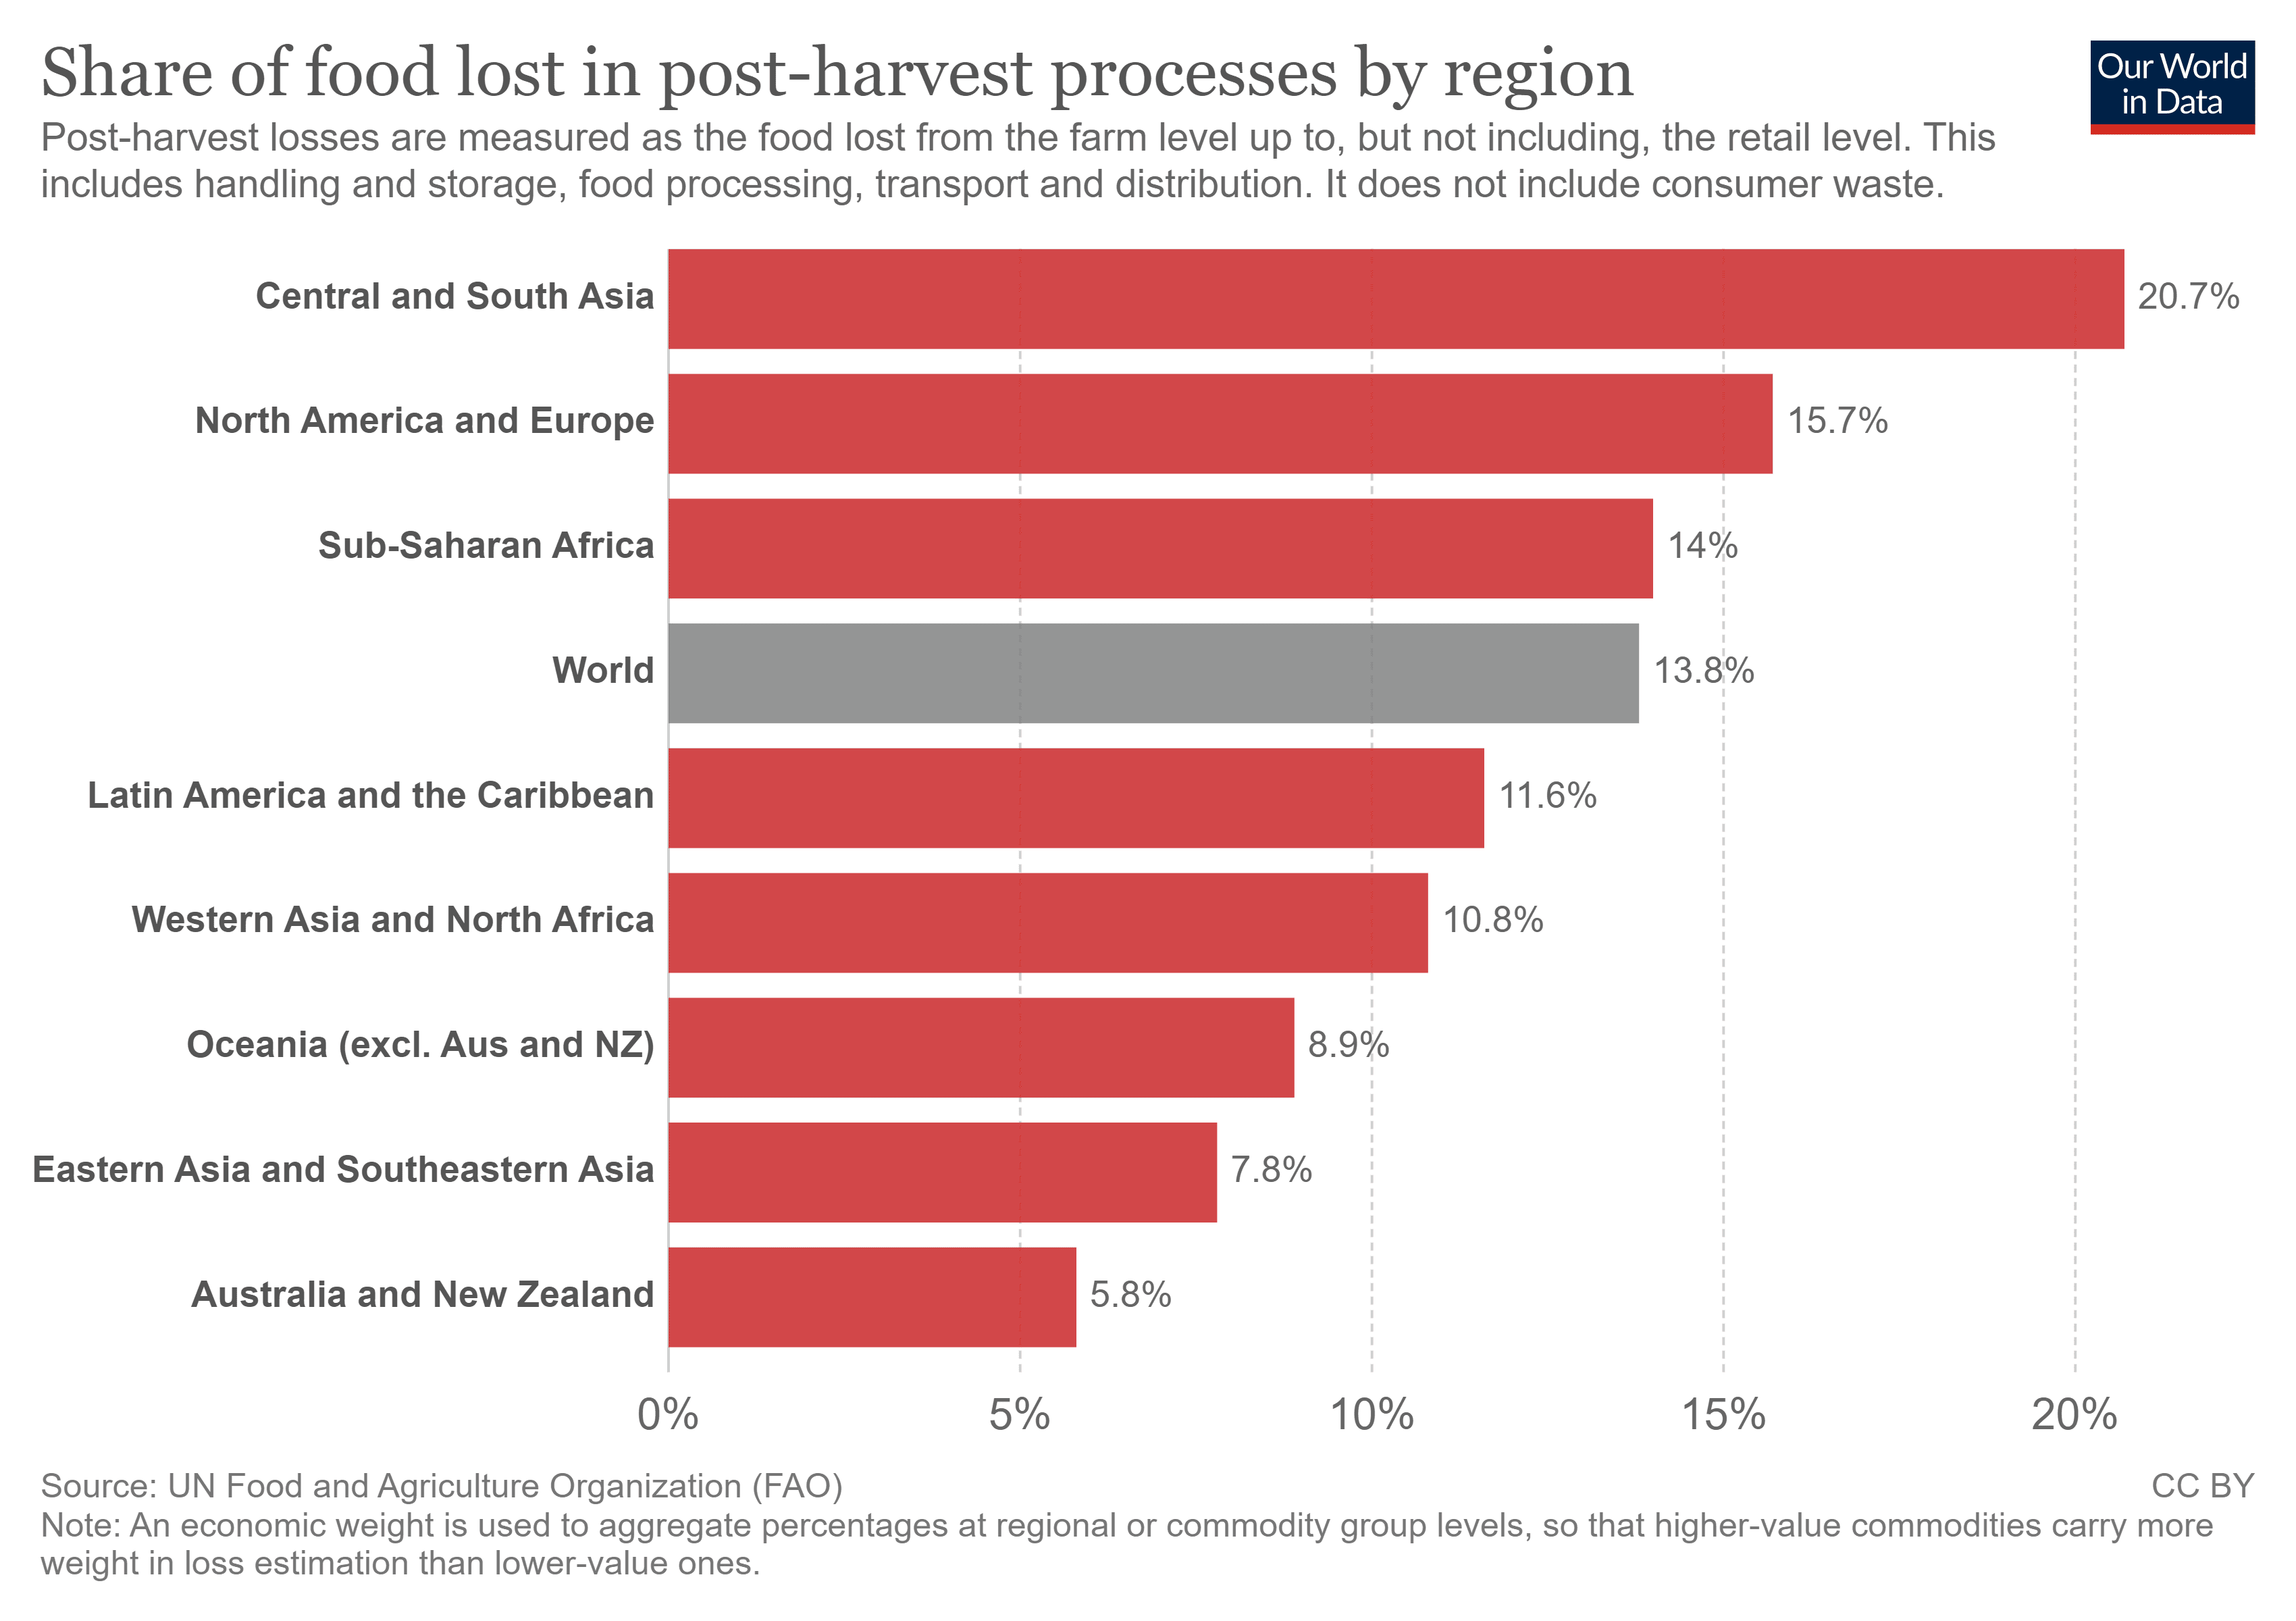 Chart showing share of food lost in post-harvest processes by region